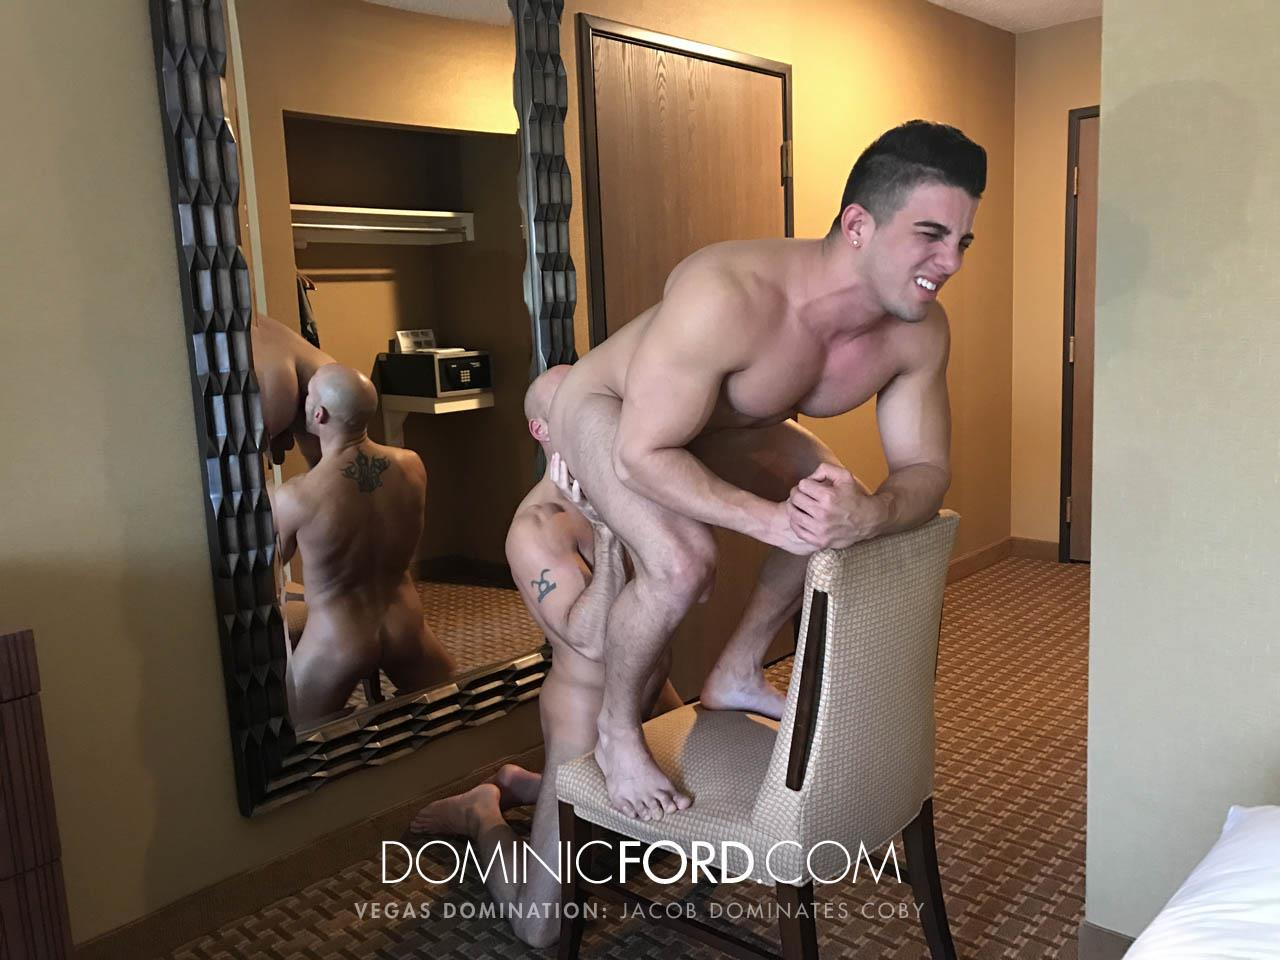 Dominic-Ford-Fucking-in-A-Vegas-Hotel-Free-Gay-Porn-15 Getting Fucked By A Big Uncut Cock In A Vegas Hotel